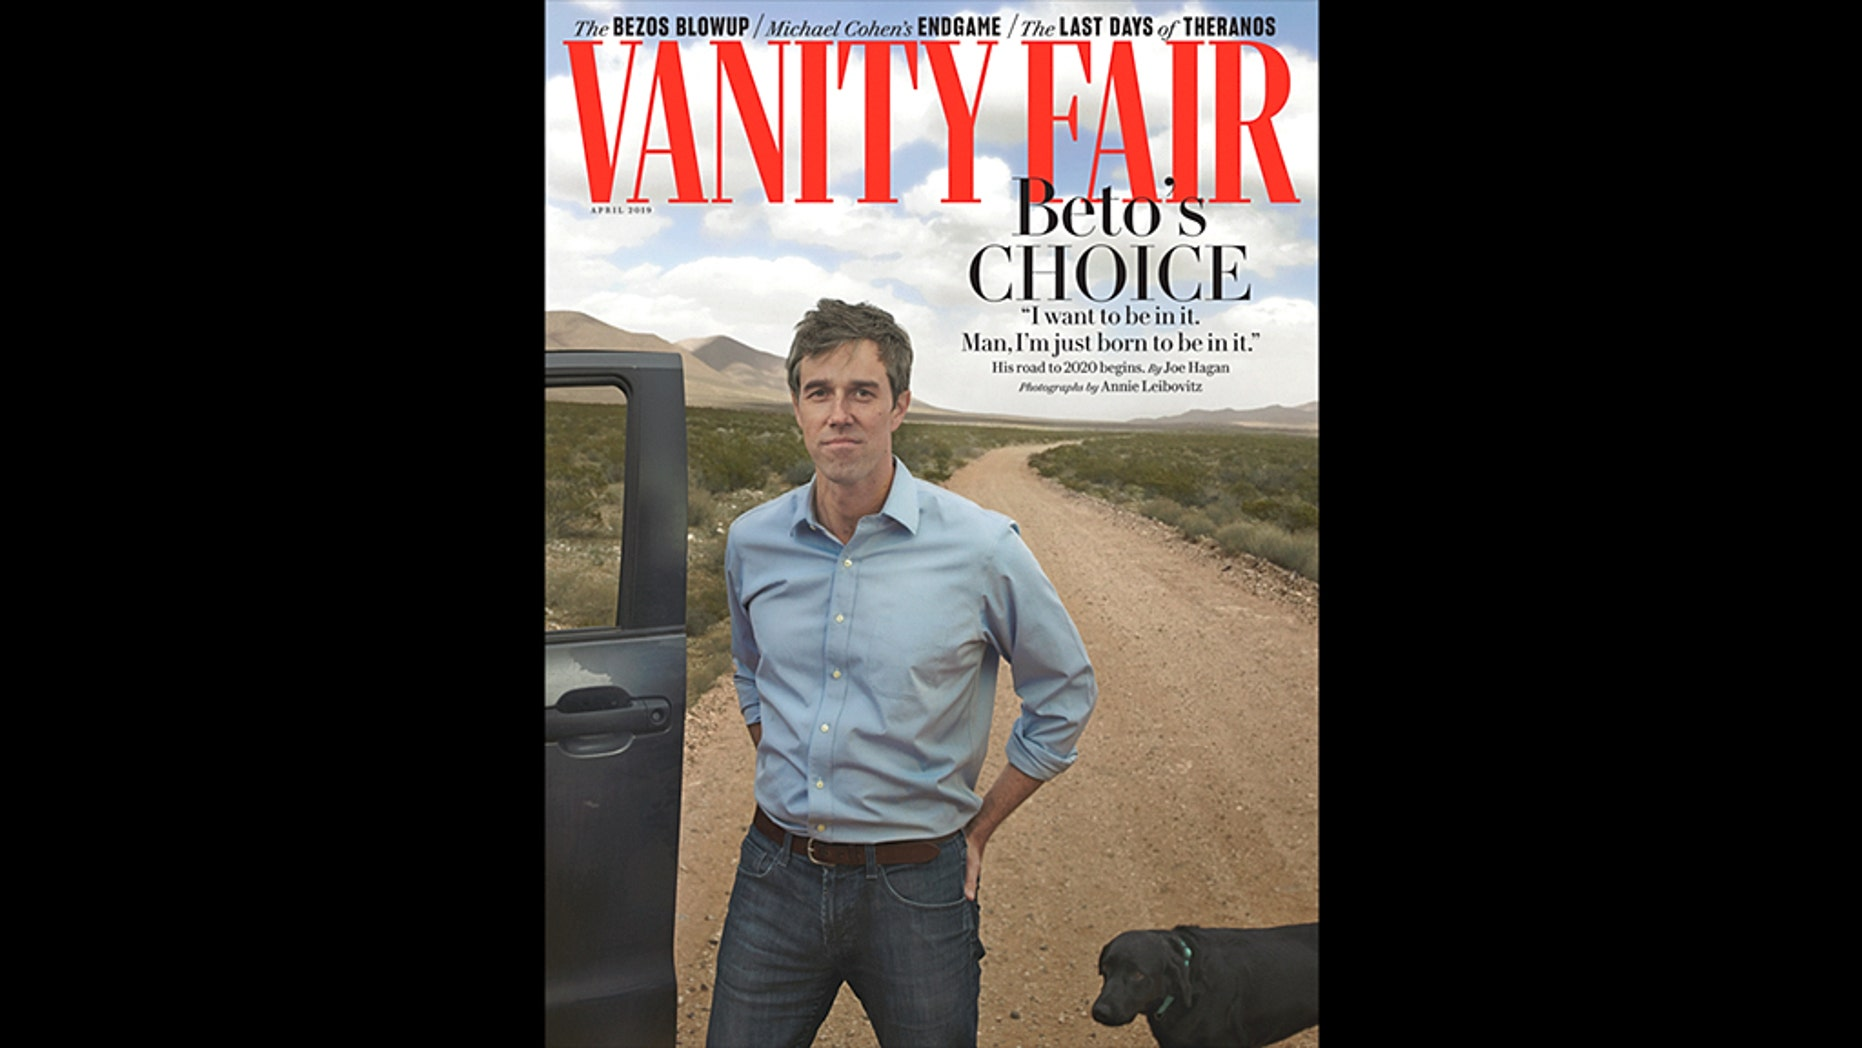 MSNBC host Chris Matthews is a huge fan of Beto O'Rourke's new Vanity Fair cover.